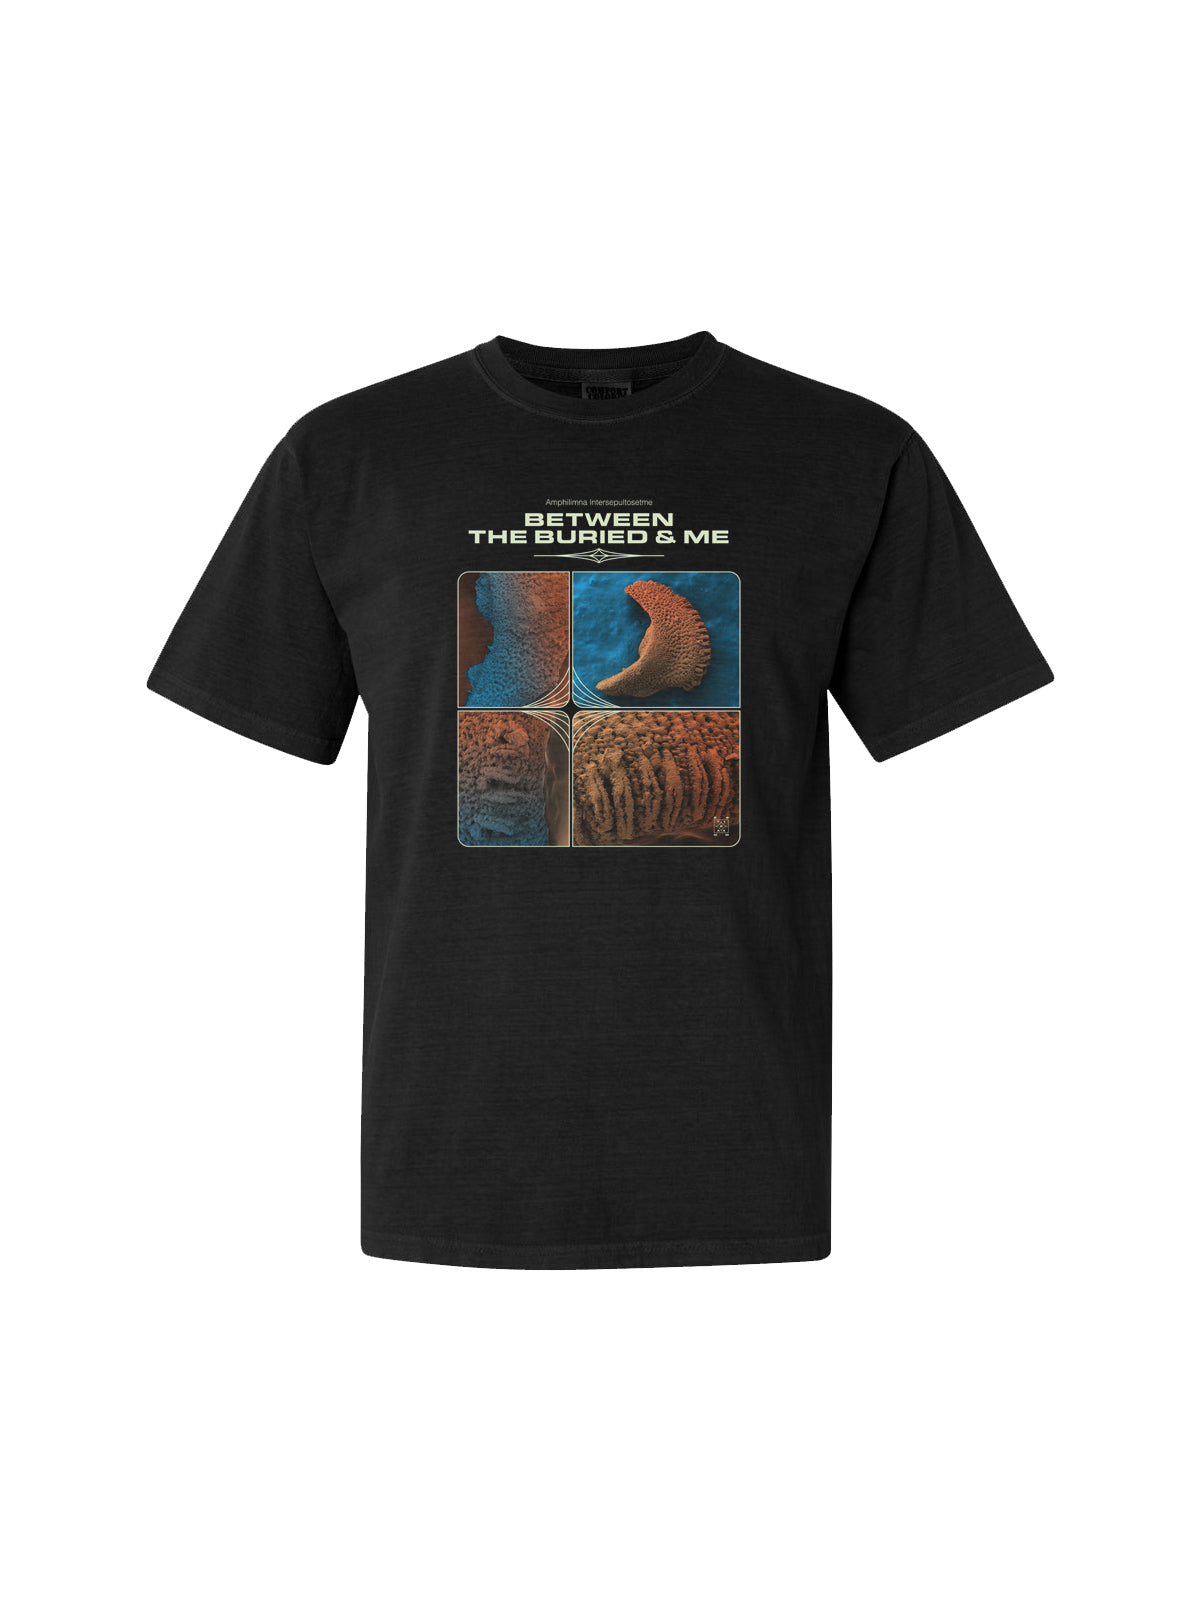 Between the Buried and Me - Amphilimna Intersepultosetme Shirt - Merch Limited